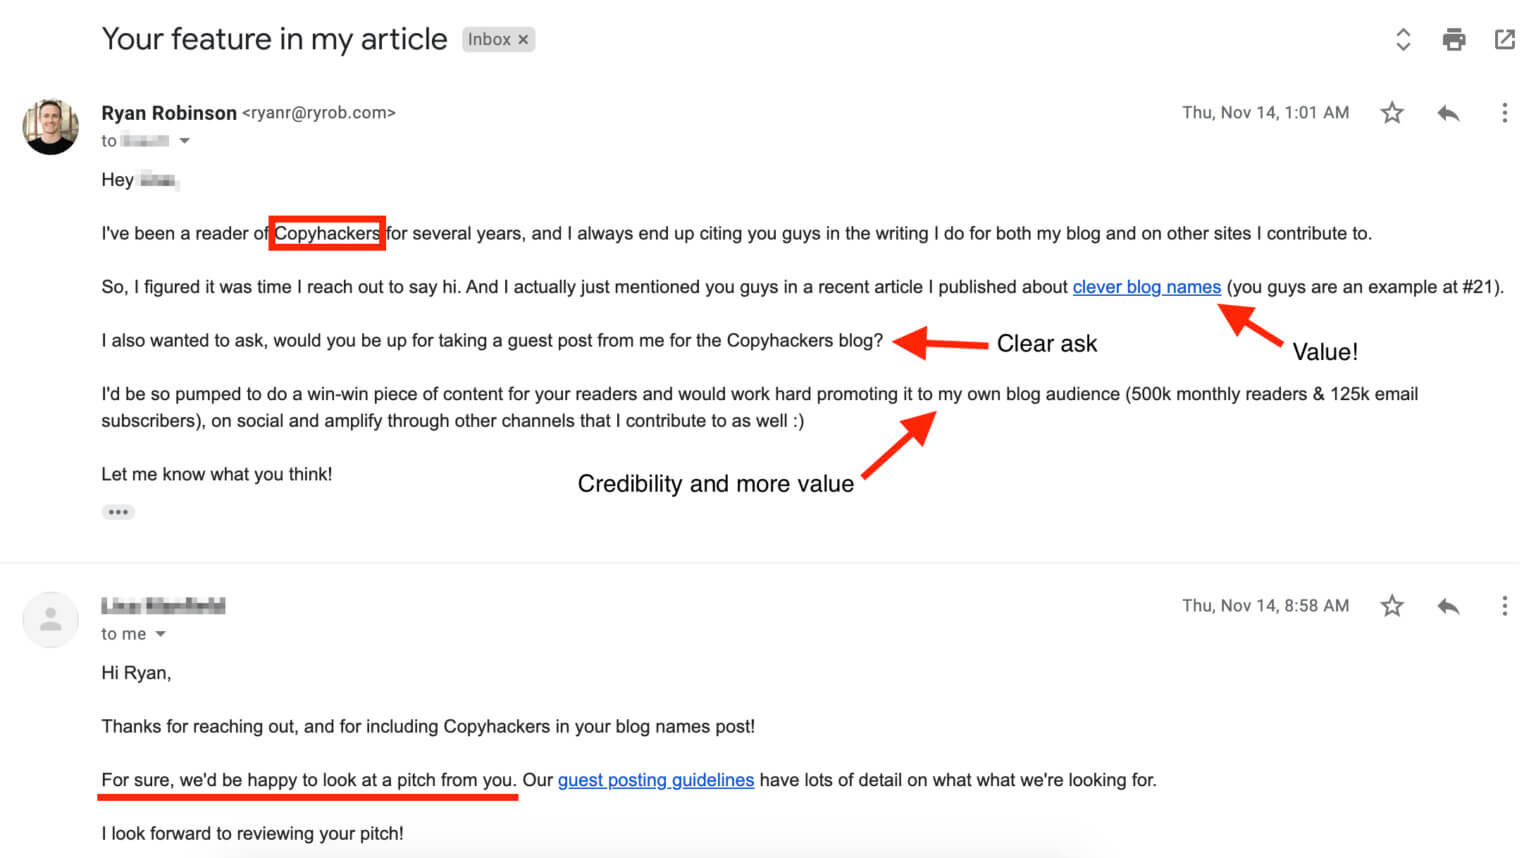 Copyhackers-blog-outreach-email-template-example-and-screenshot-1536x858